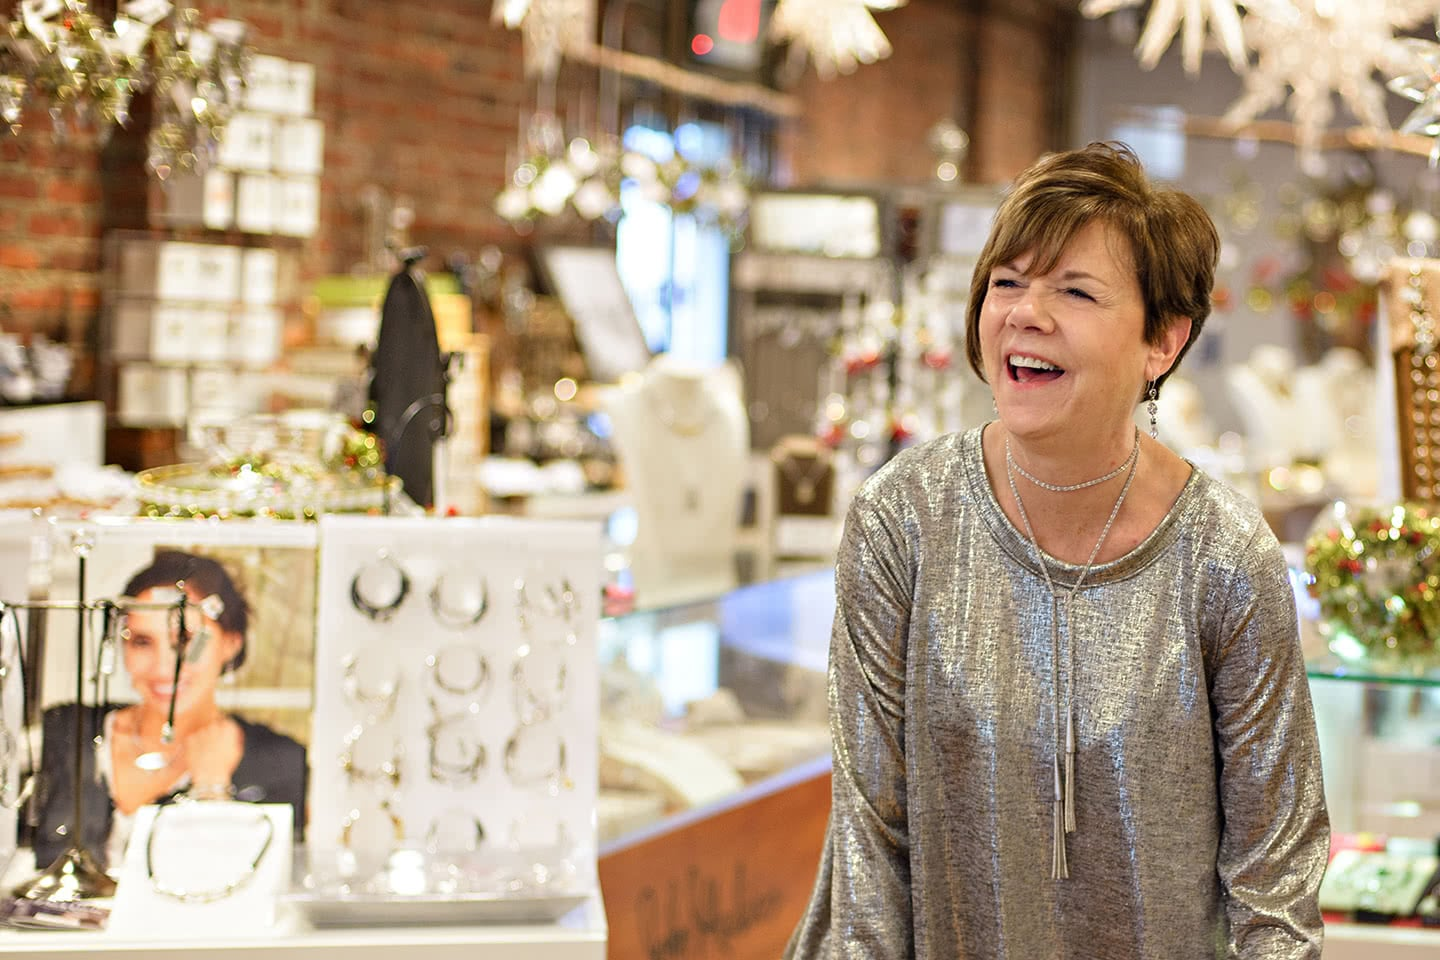 A Holiday Smile goes with everything at our Christmas Store in Bay Shore, Long Island